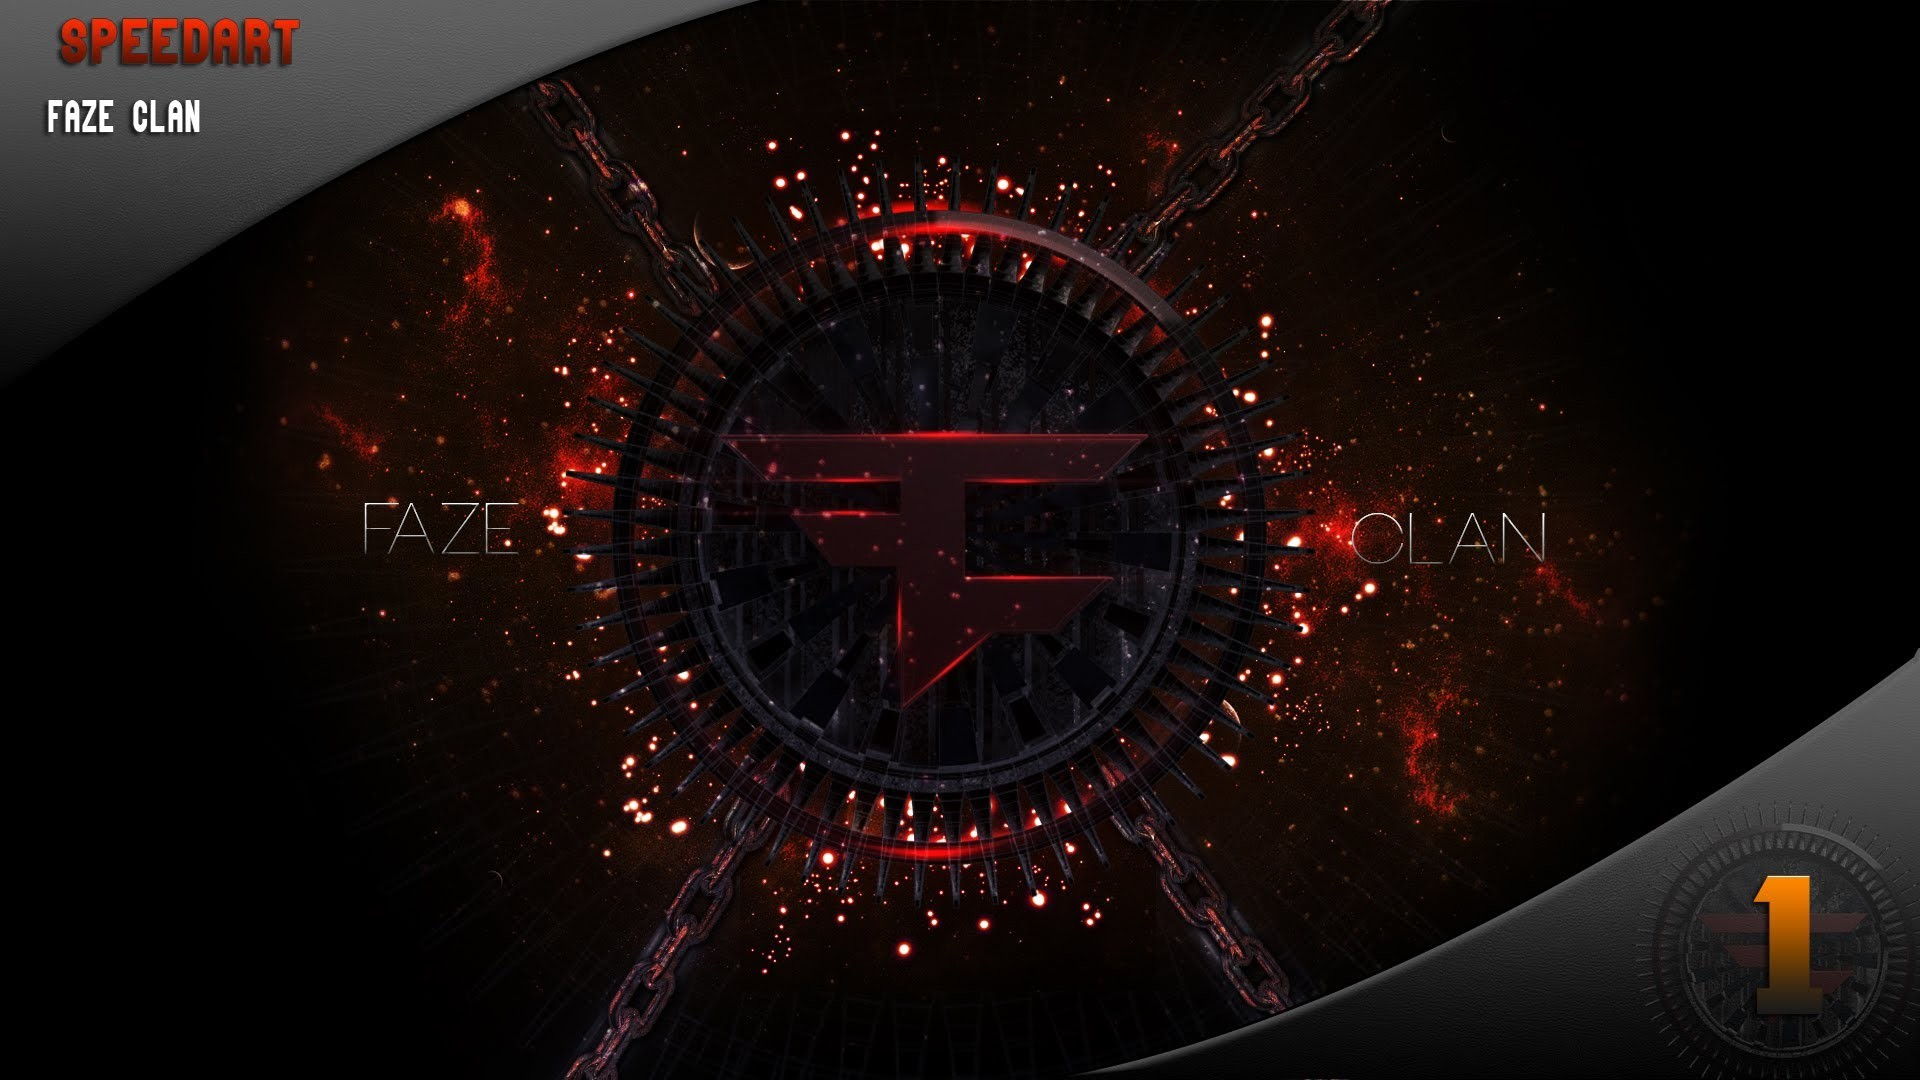 1920x1080 YouTube FaZe Clan submited images.